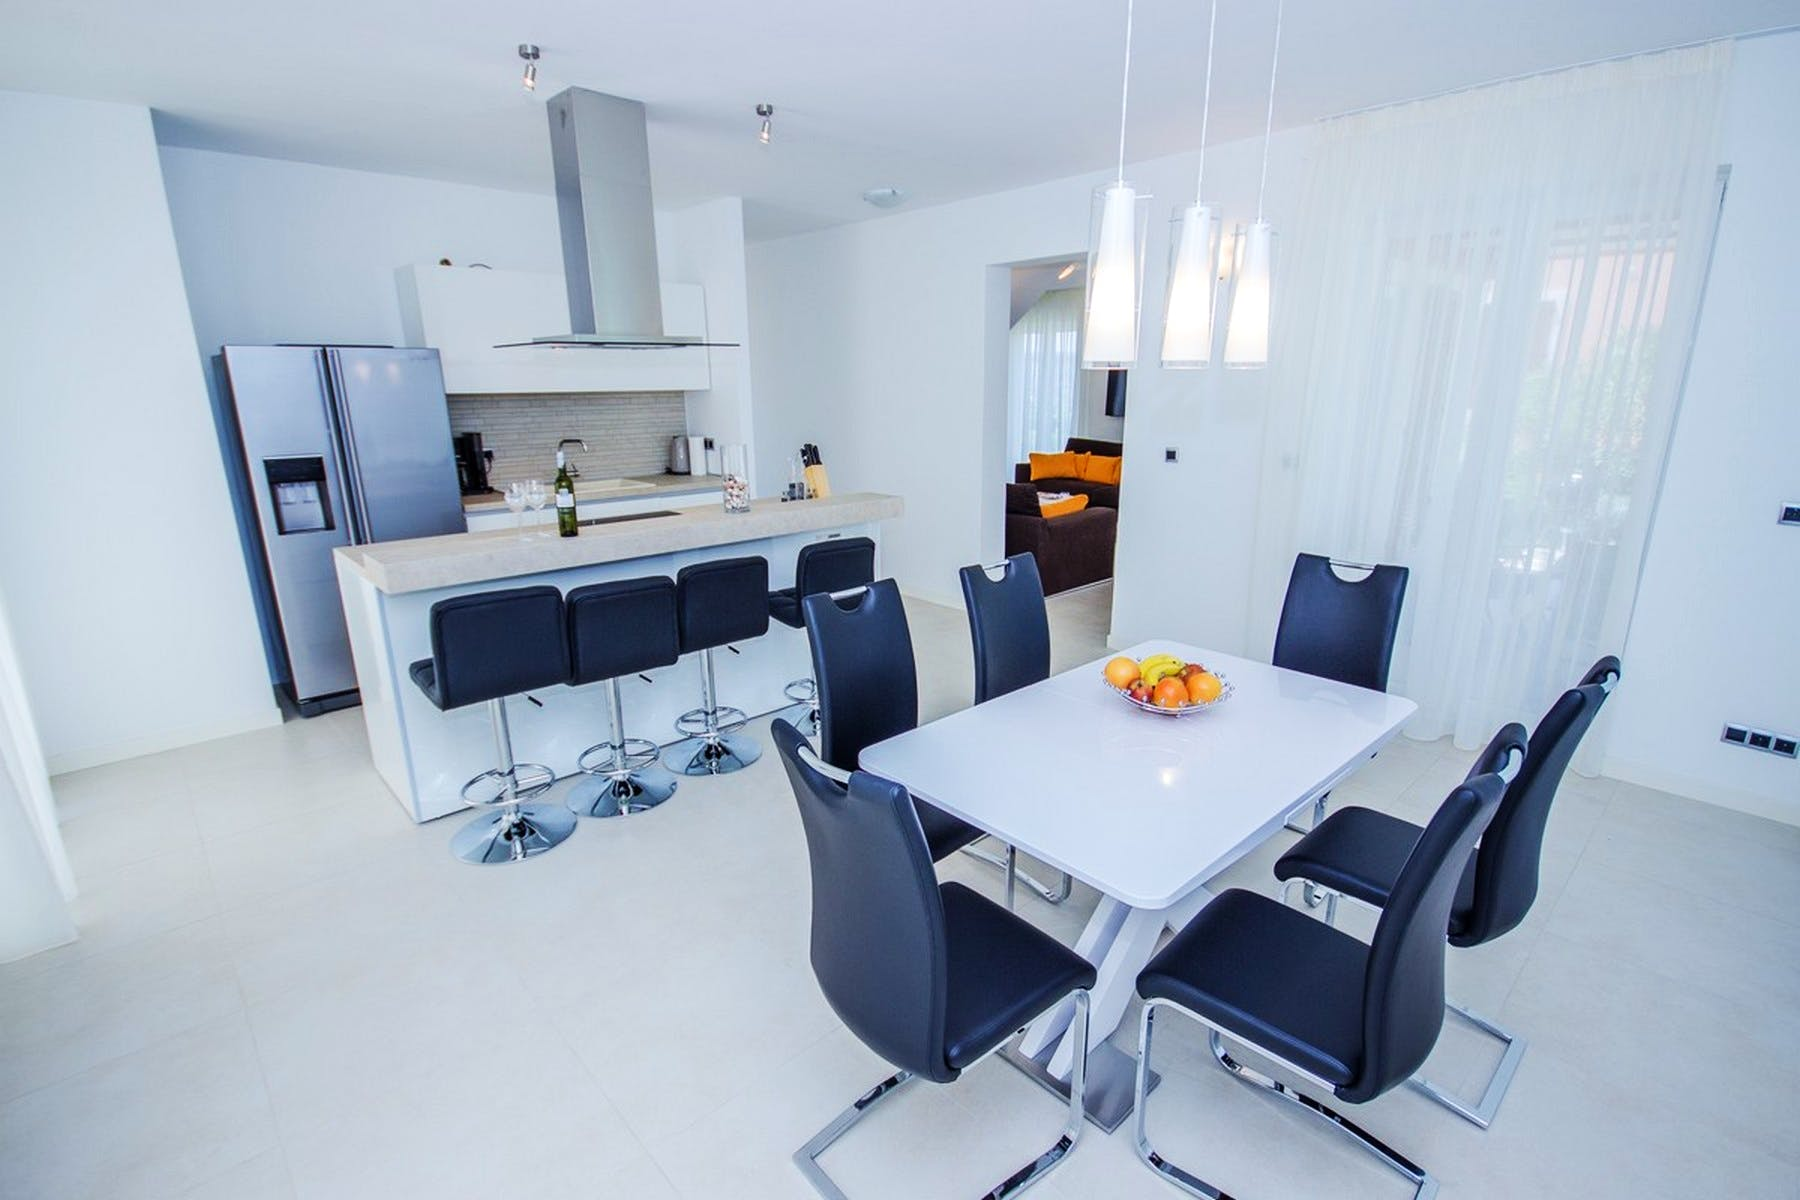 Black and white decor of the cooking and dining area